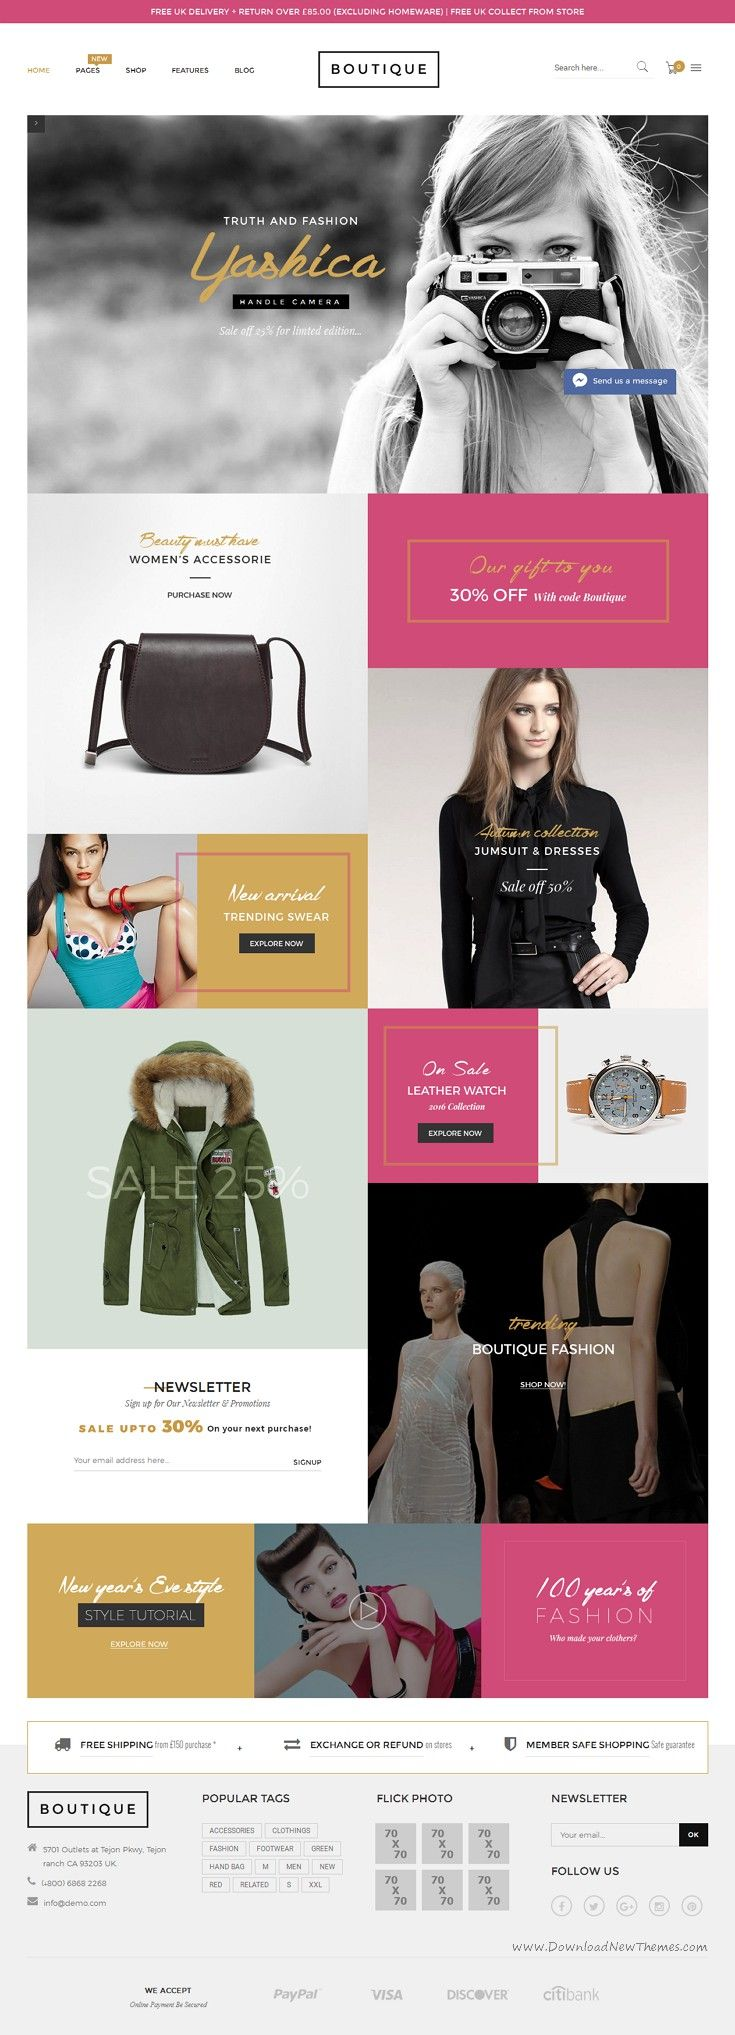 39 best images about Shopify Themes on Pinterest